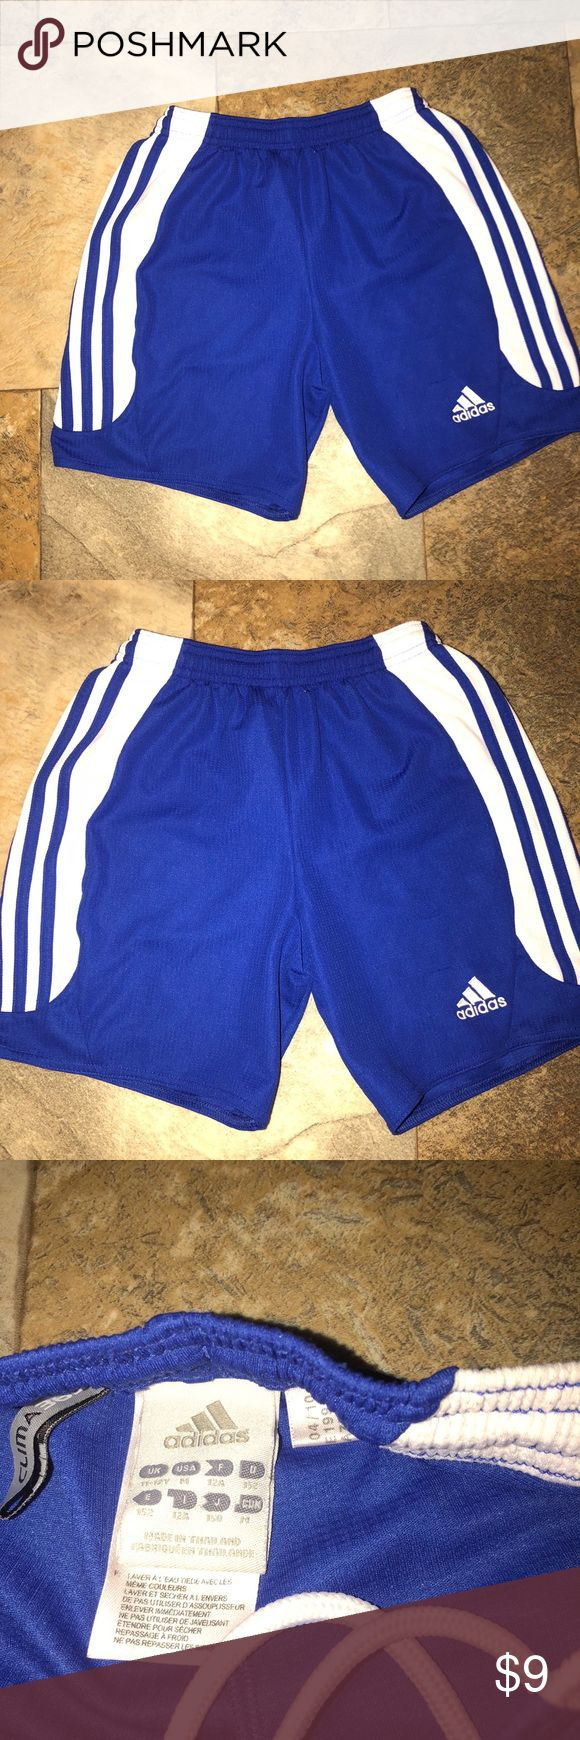 Adidas Soccer shorts Euc Youth Medium (6-8) Adidas Soccer shorts Euc Youth Medium (6-8) minor wear shown in pictures adidas Bottoms Shorts